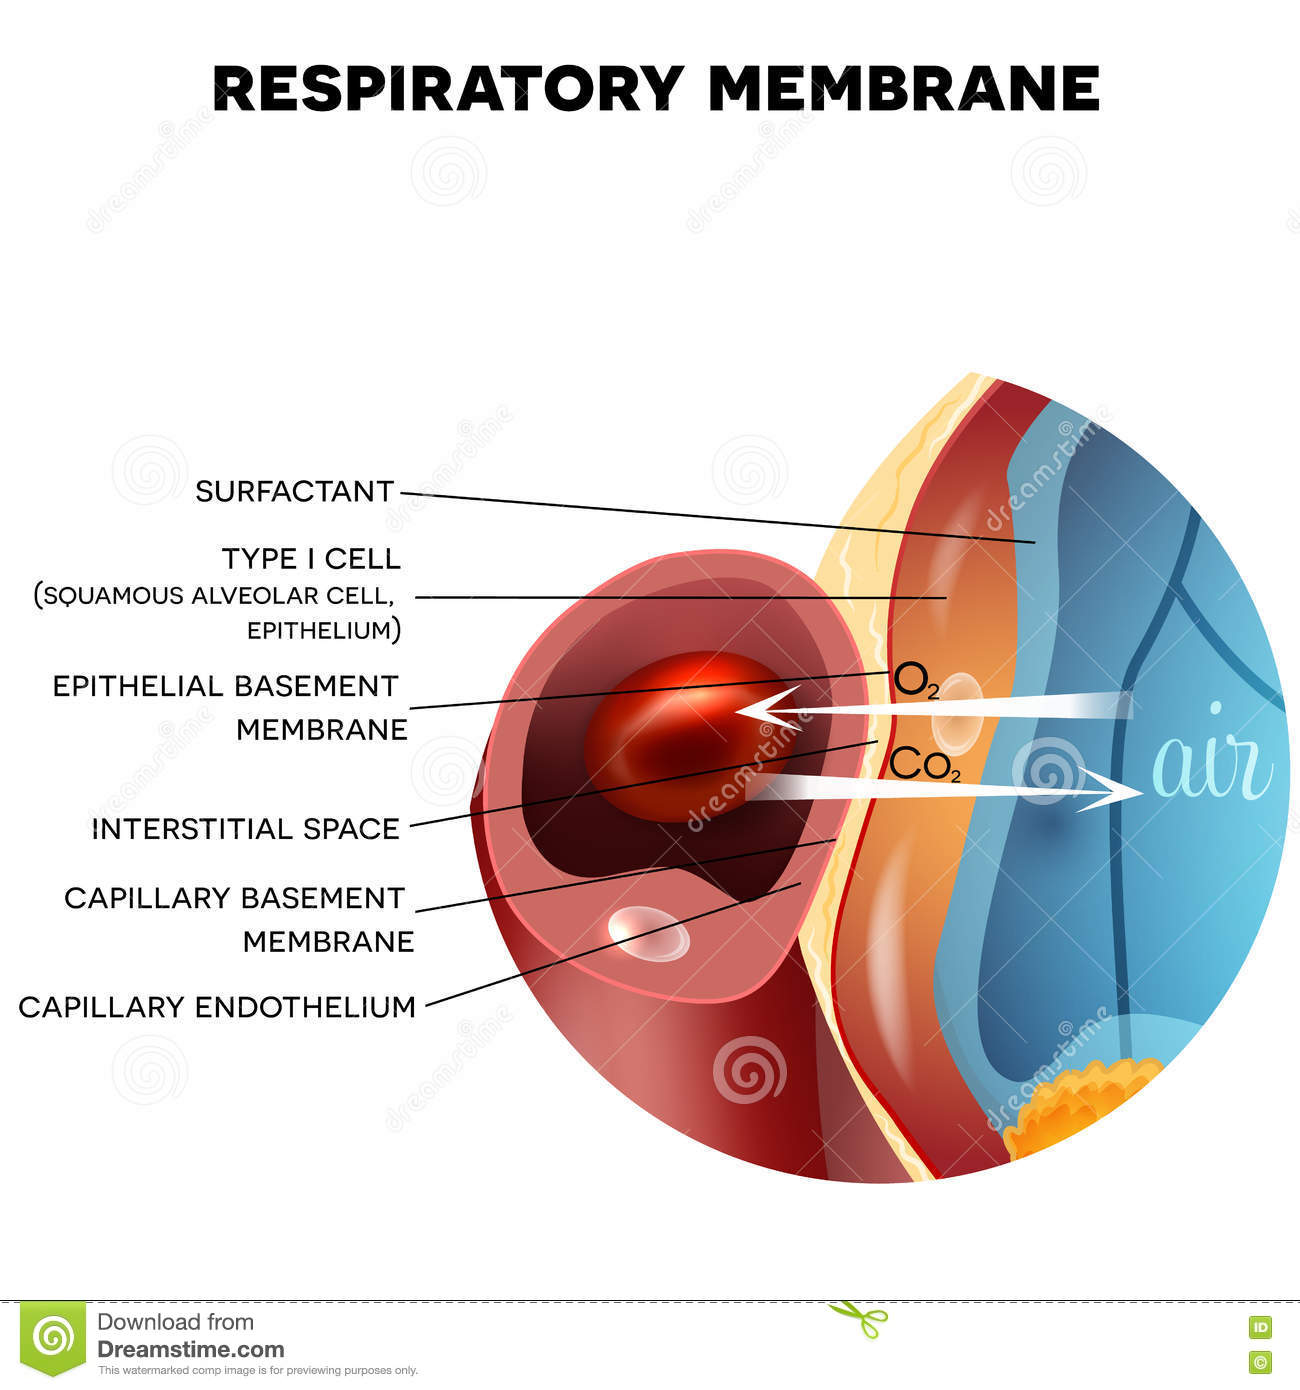 lung alveoli diagram wiring for hot tub respiratory membrane of alveolus stock vector image